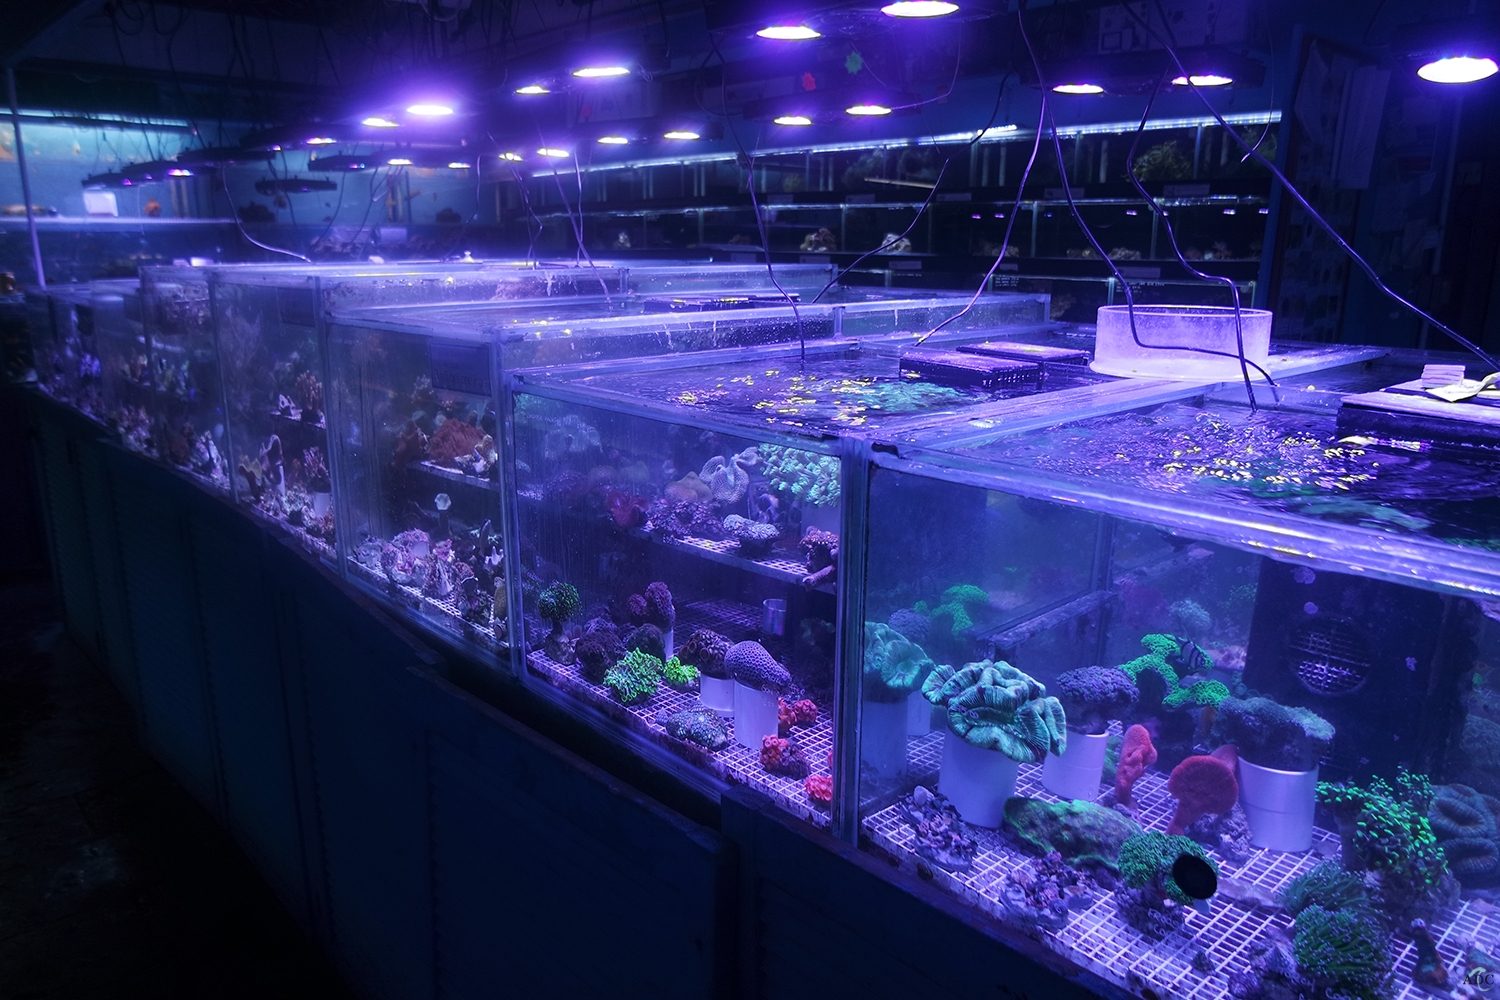 Freshwater aquarium fish for sale online uk - Freshwater Aquarium Fish Uk